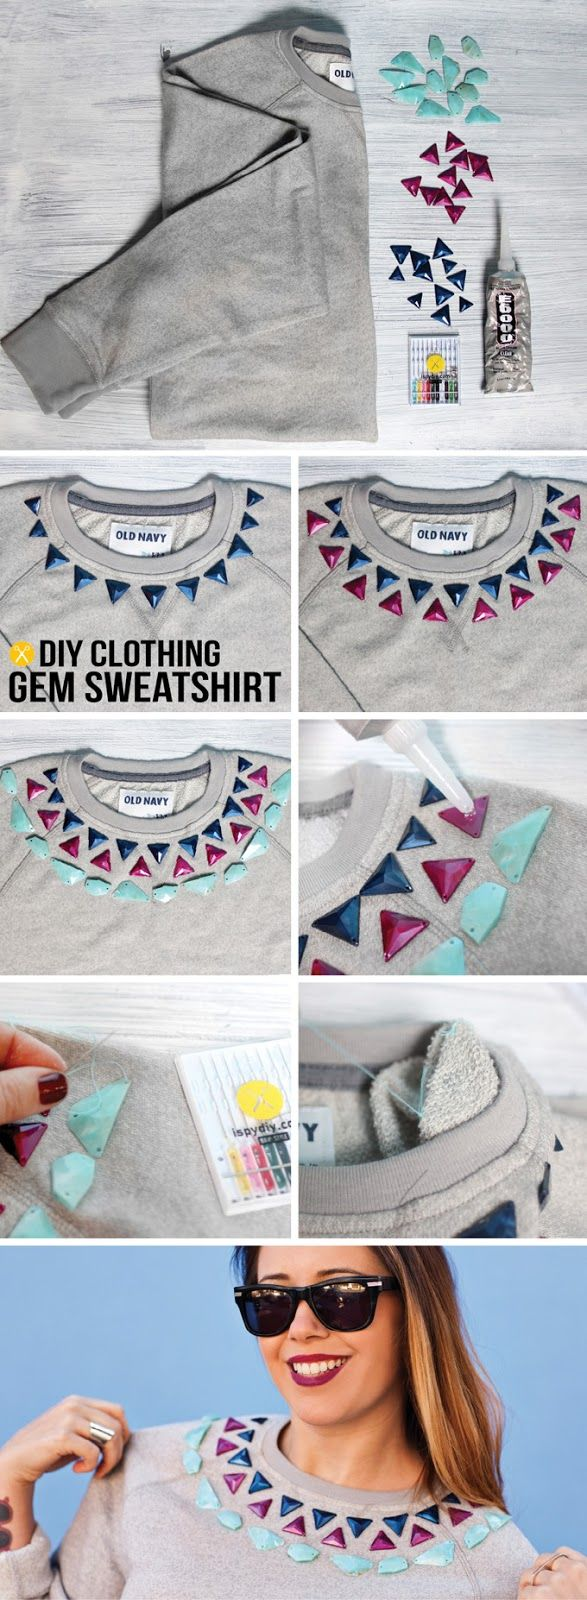 I Spy DIY: MY DIY | Gem Embellished Sweatshirt